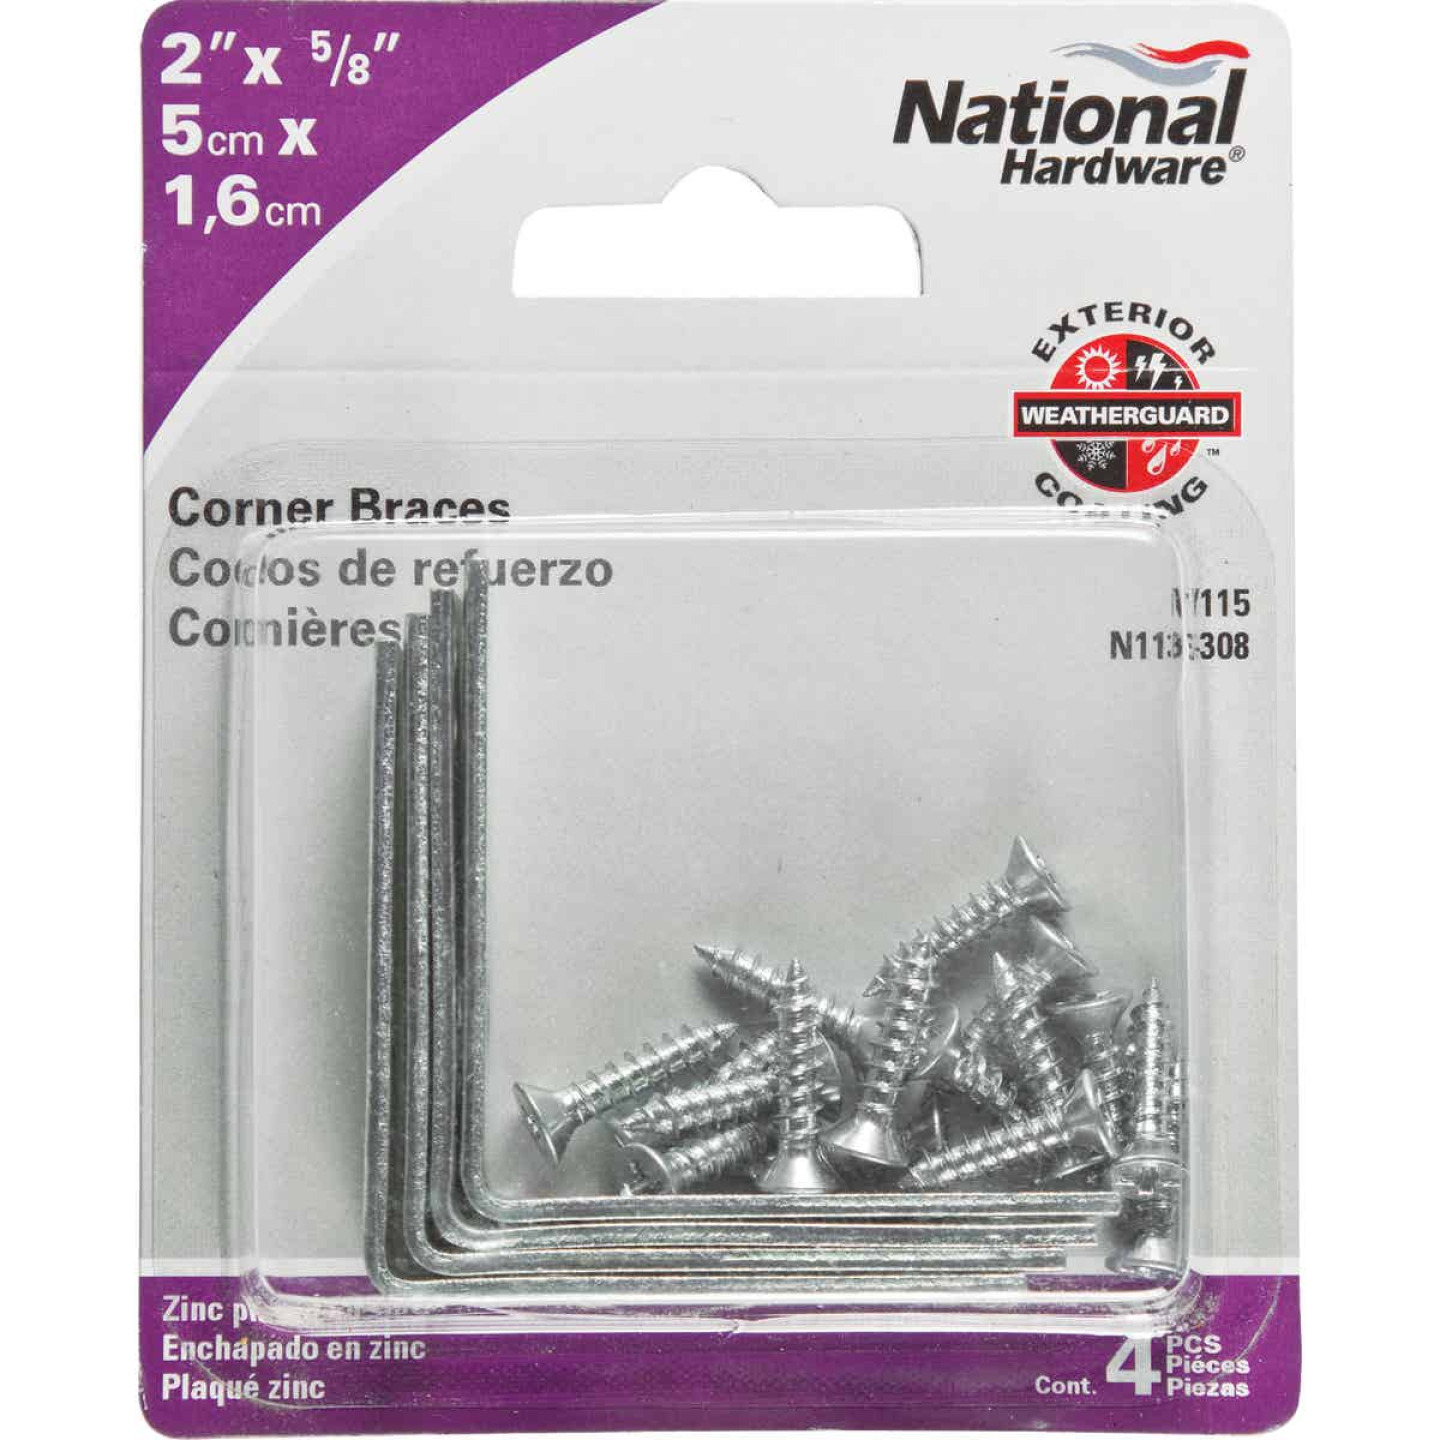 National Catalog V115 2 In. x 5/8 In. Zinc Steel Corner Brace (4-Count) Image 2